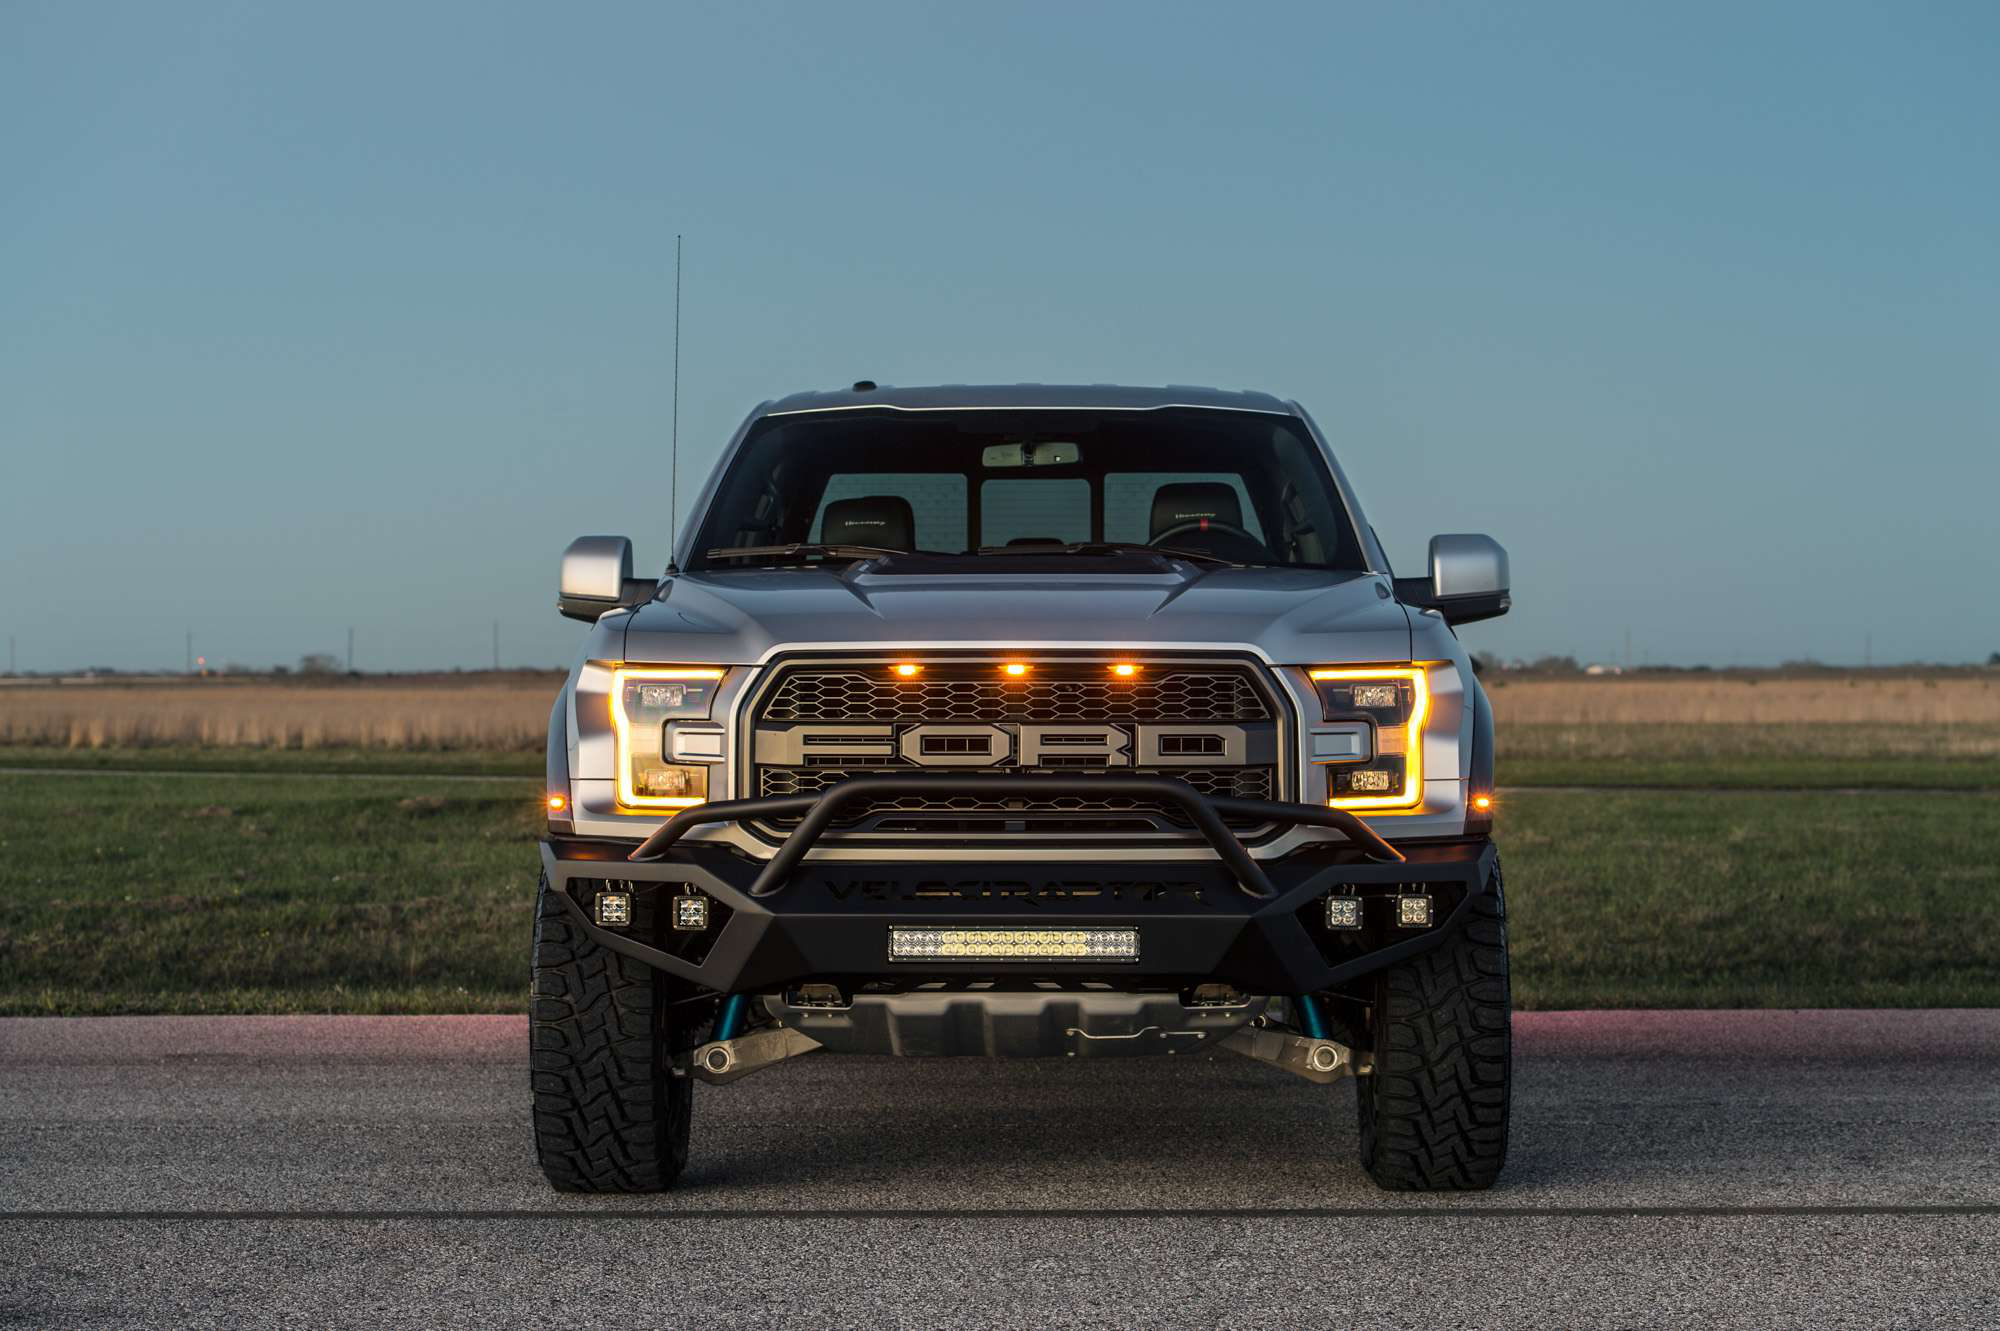 Hennessey S 2017 Velociraptor 600 Upgrade Brings 200 More Horse To The F 150 Raptor Photos Courtesy Performance